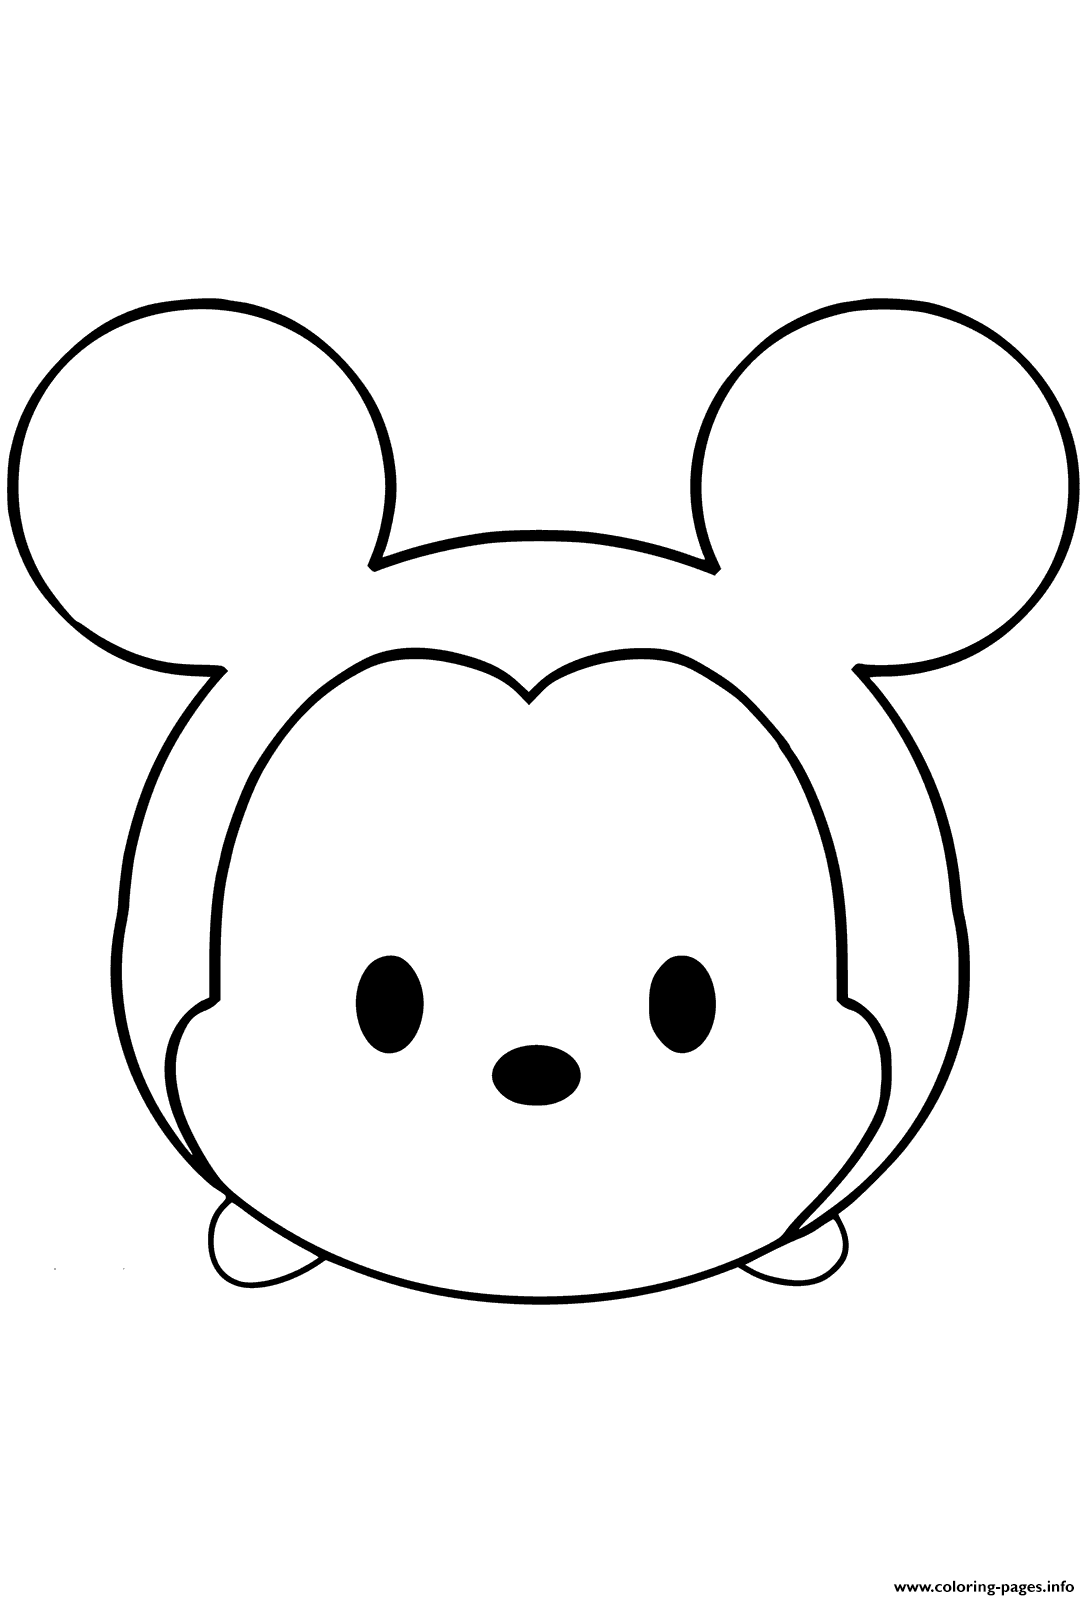 Mickey Mouse Emoji Face Tsum Tsum Coloring Pages Printable